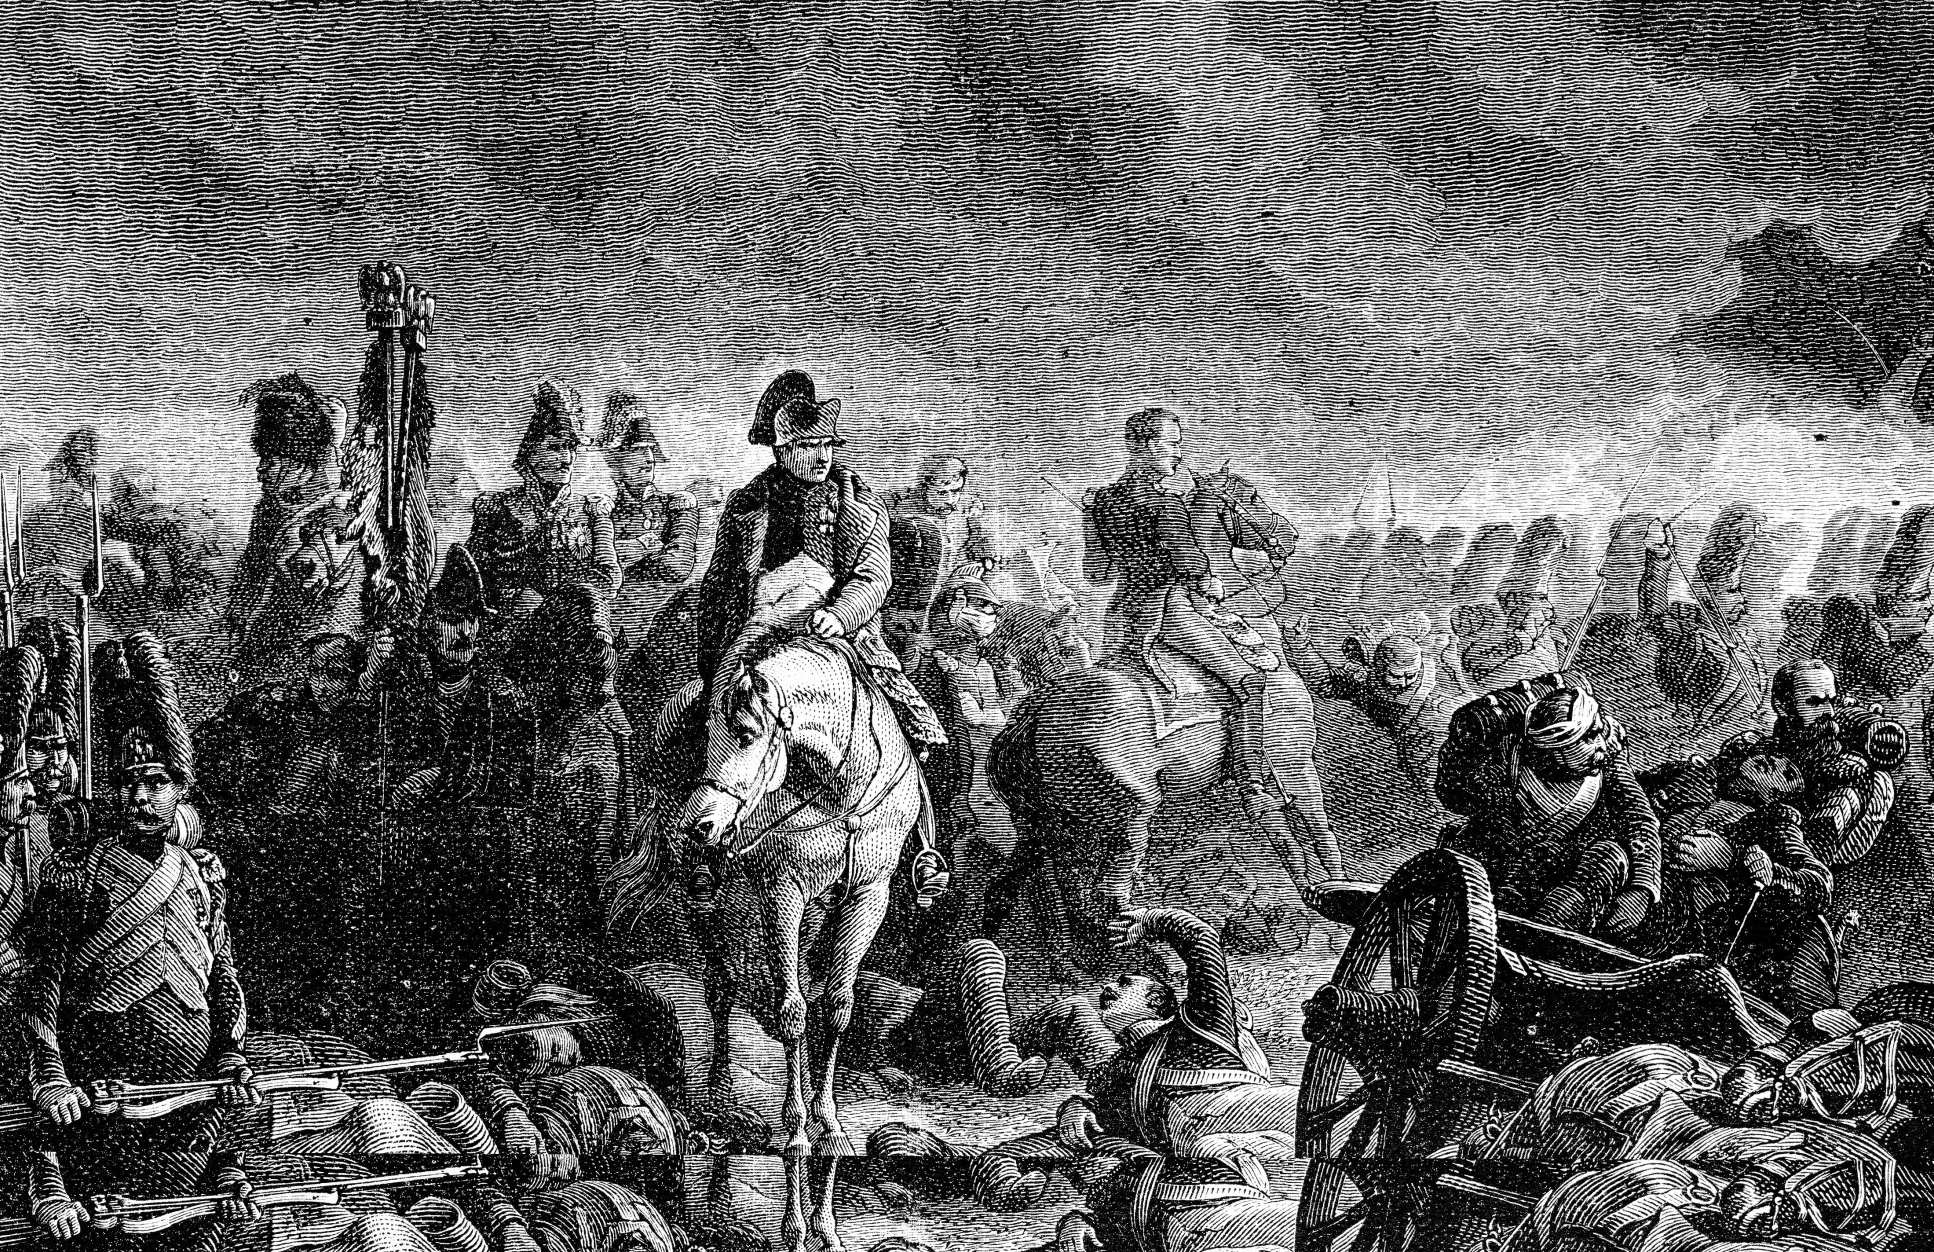 Engraving of soldiers gathering under a cloudy sky